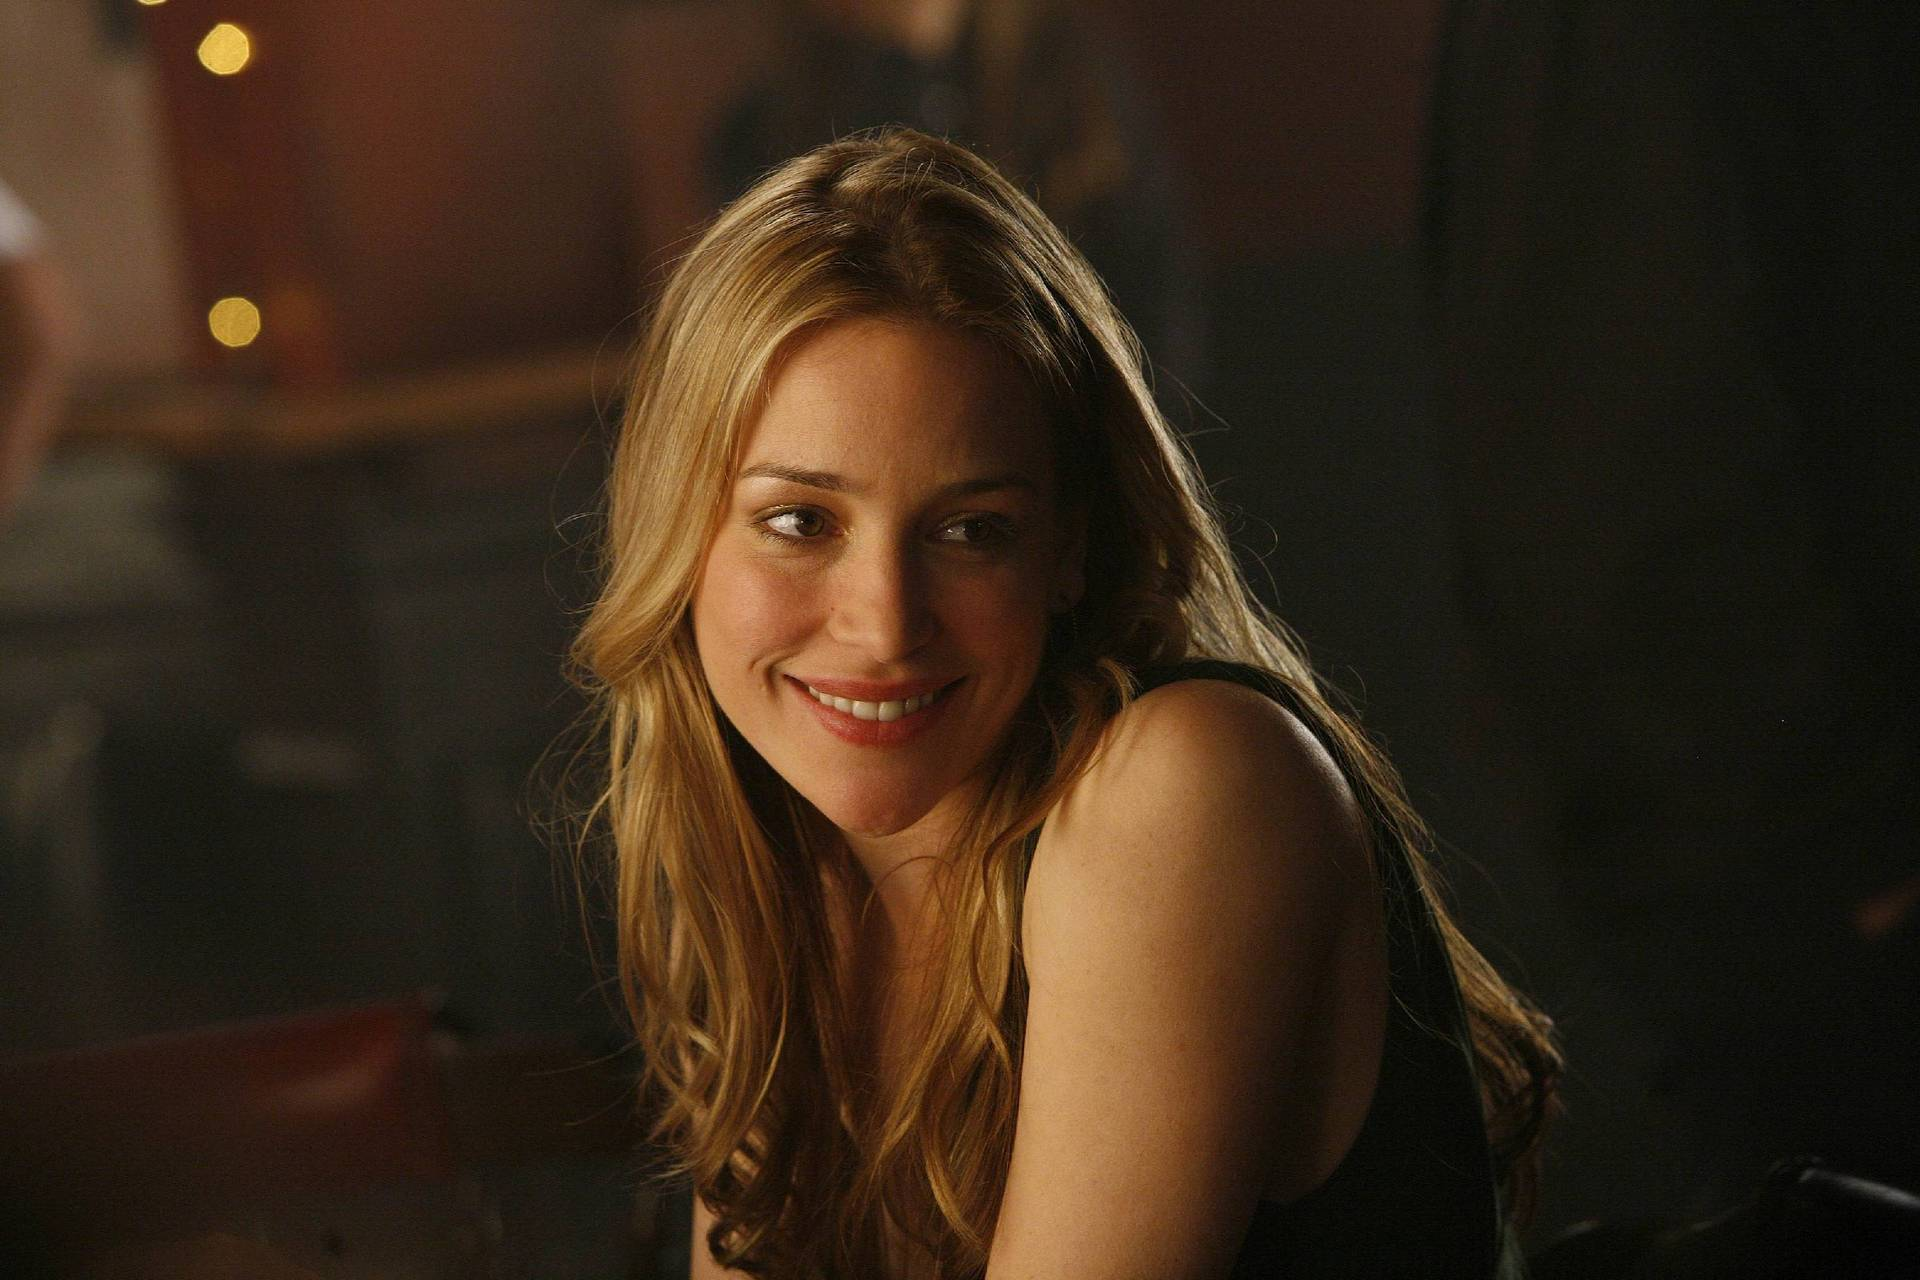 piper perabo actress hot wallpaper 67000